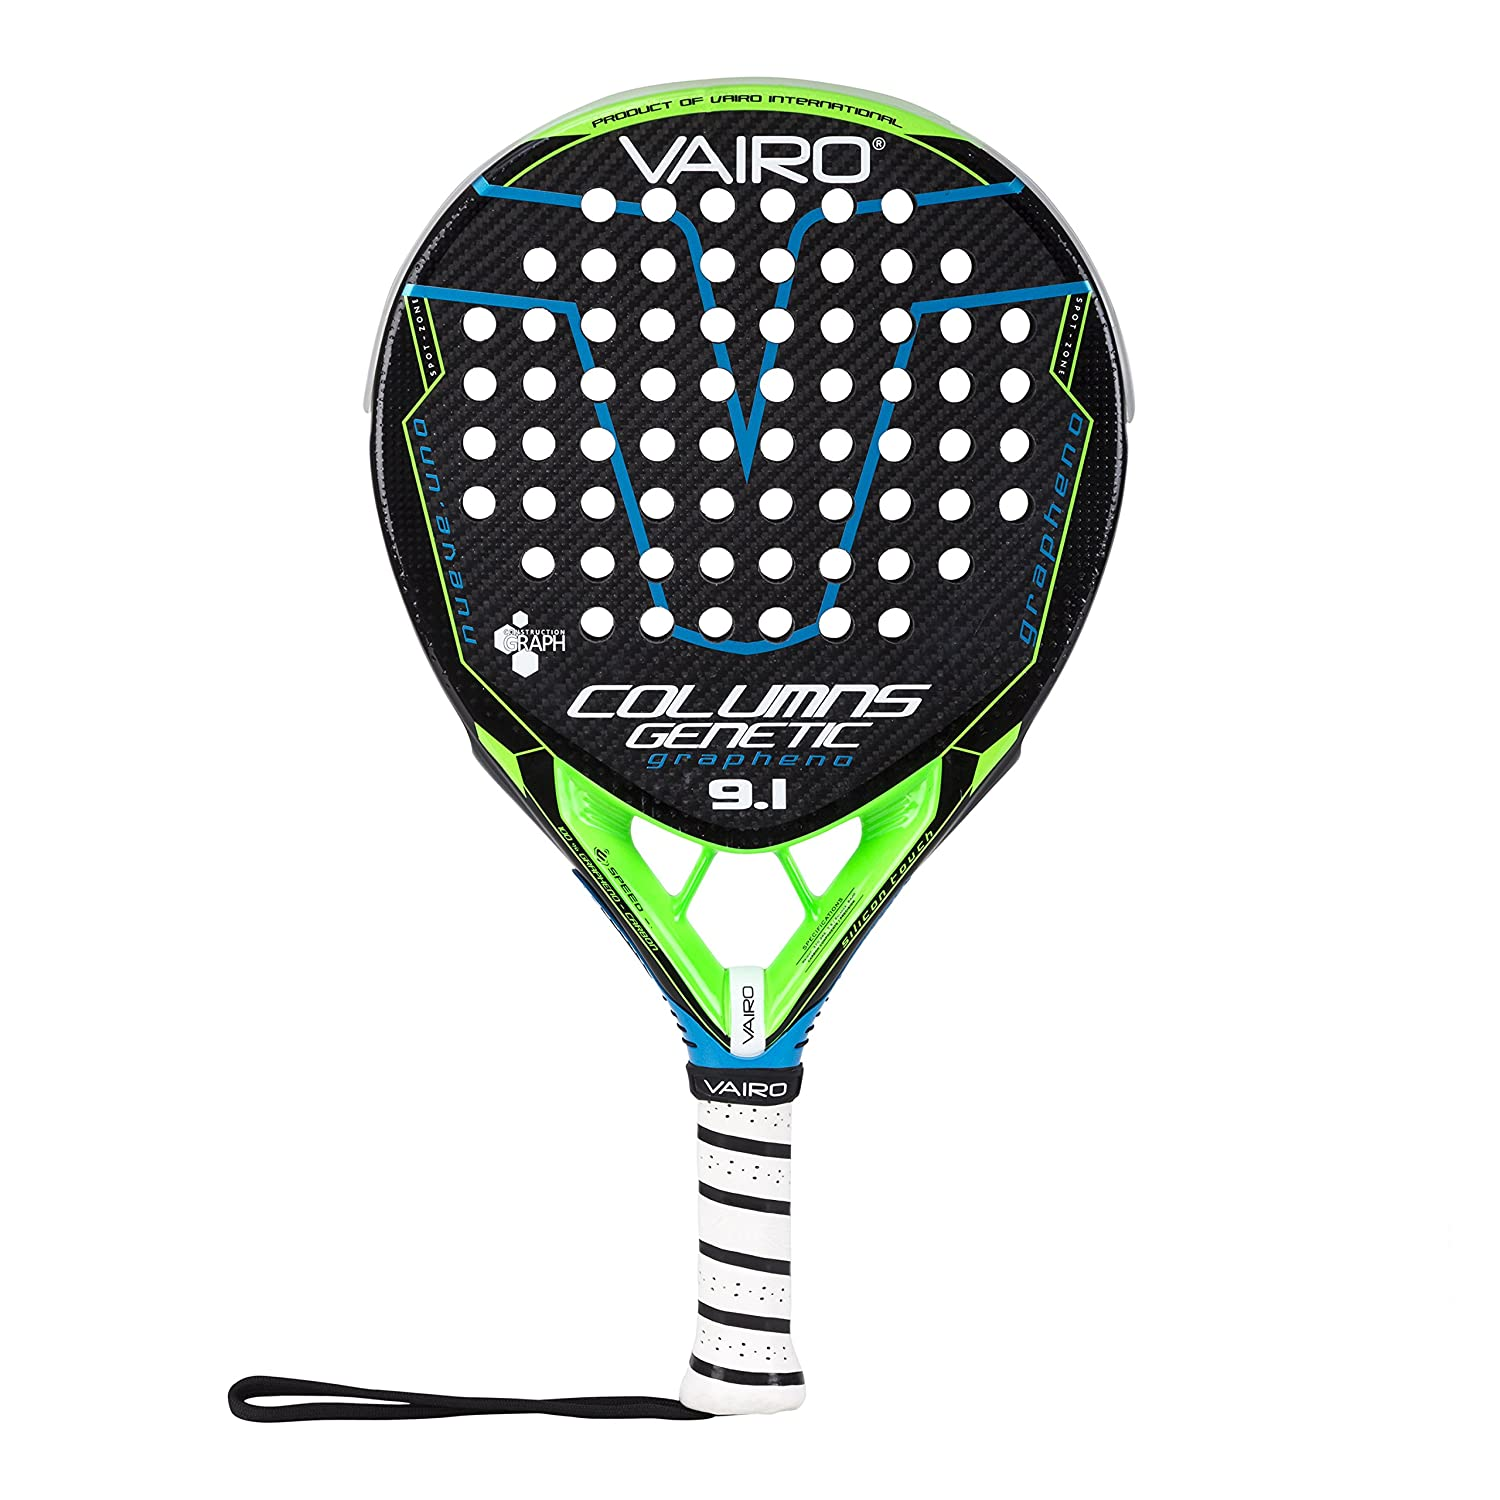 VAIRO Pala de Padel Columns Genetic 9.1: Amazon.es: Deportes y ...